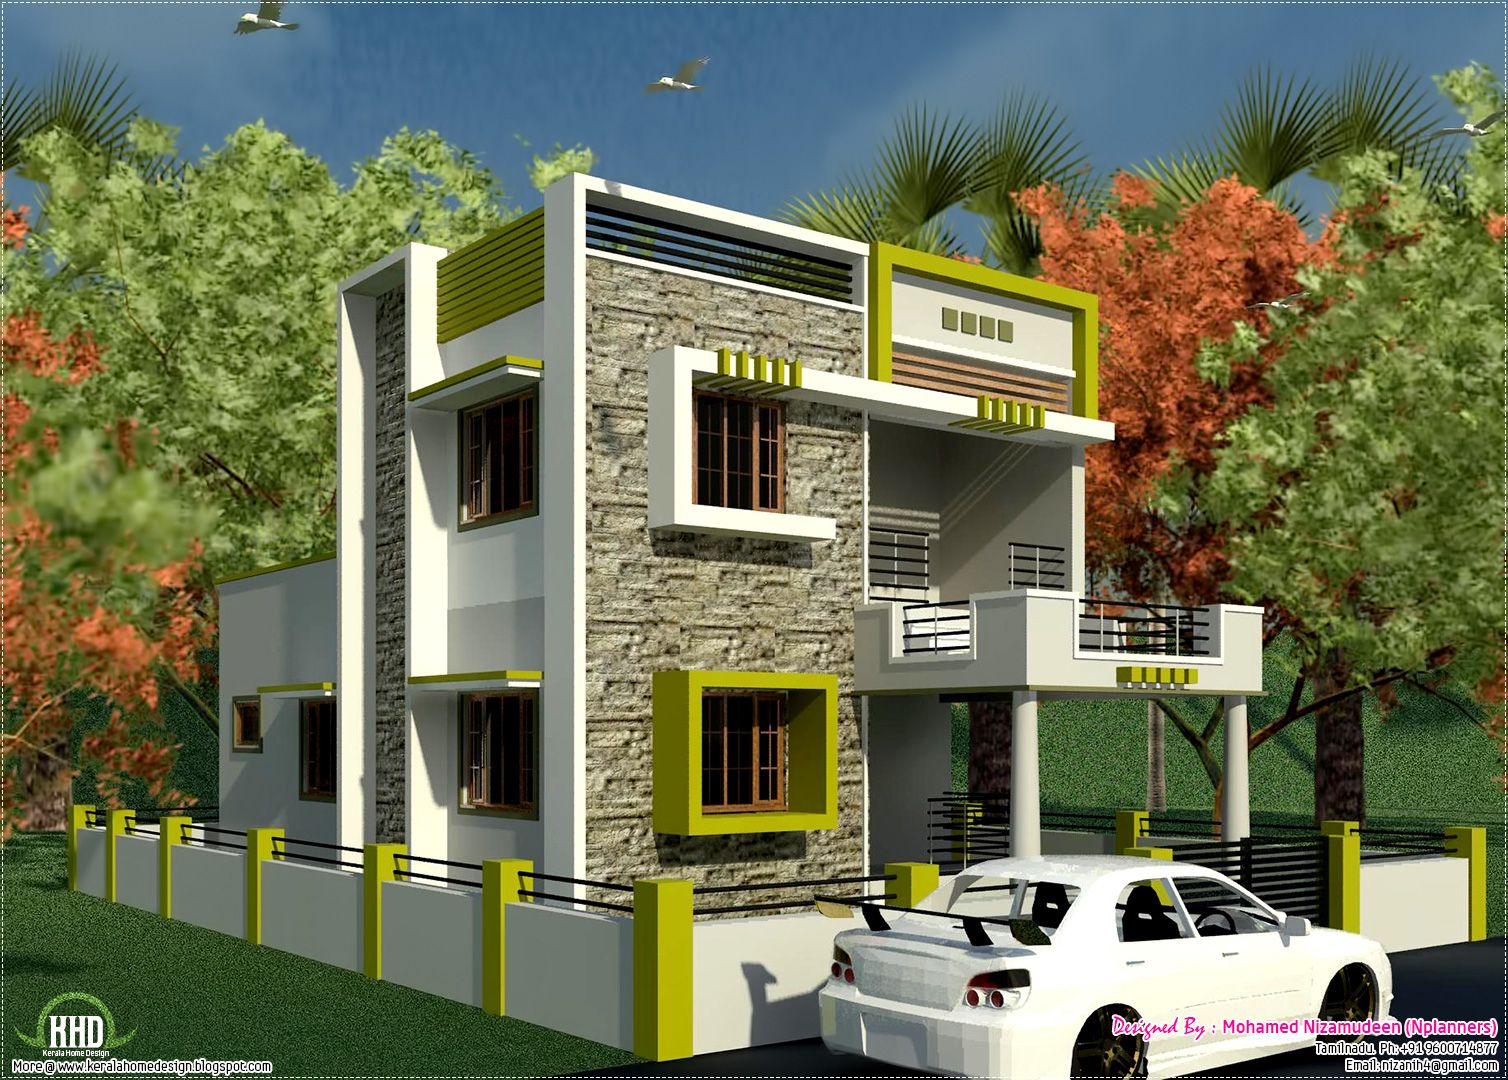 Small house with car park design tobfav com ideas for for Window design for house in india